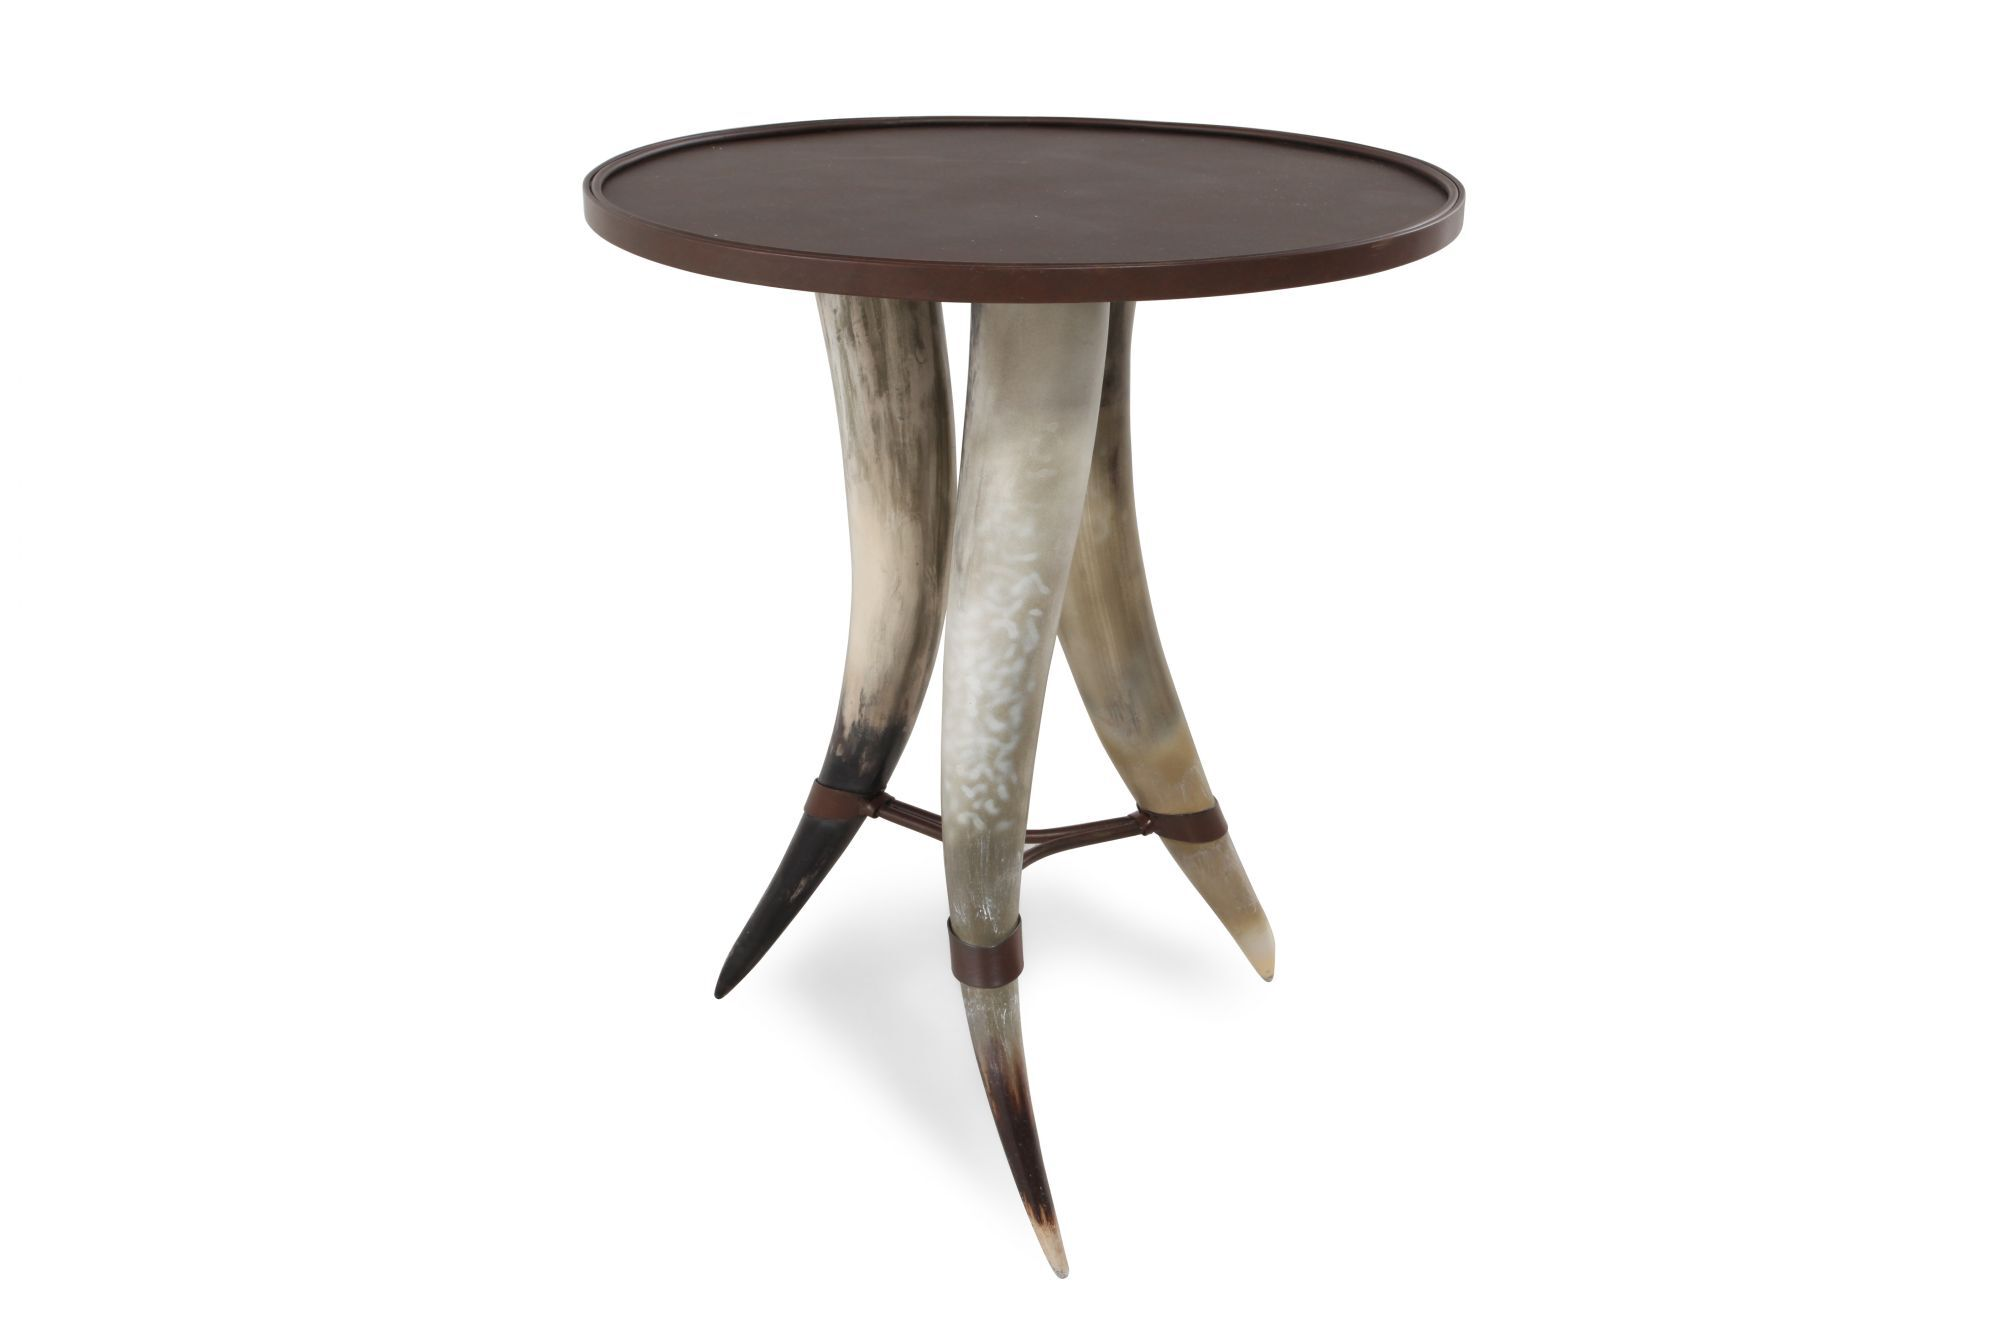 Images Round Horn Shaped Legs Contemporary Chairside Tableu0026nbsp;in Brown  Round Horn Shaped Legs Contemporary Chairside Tableu0026nbsp;in Brown